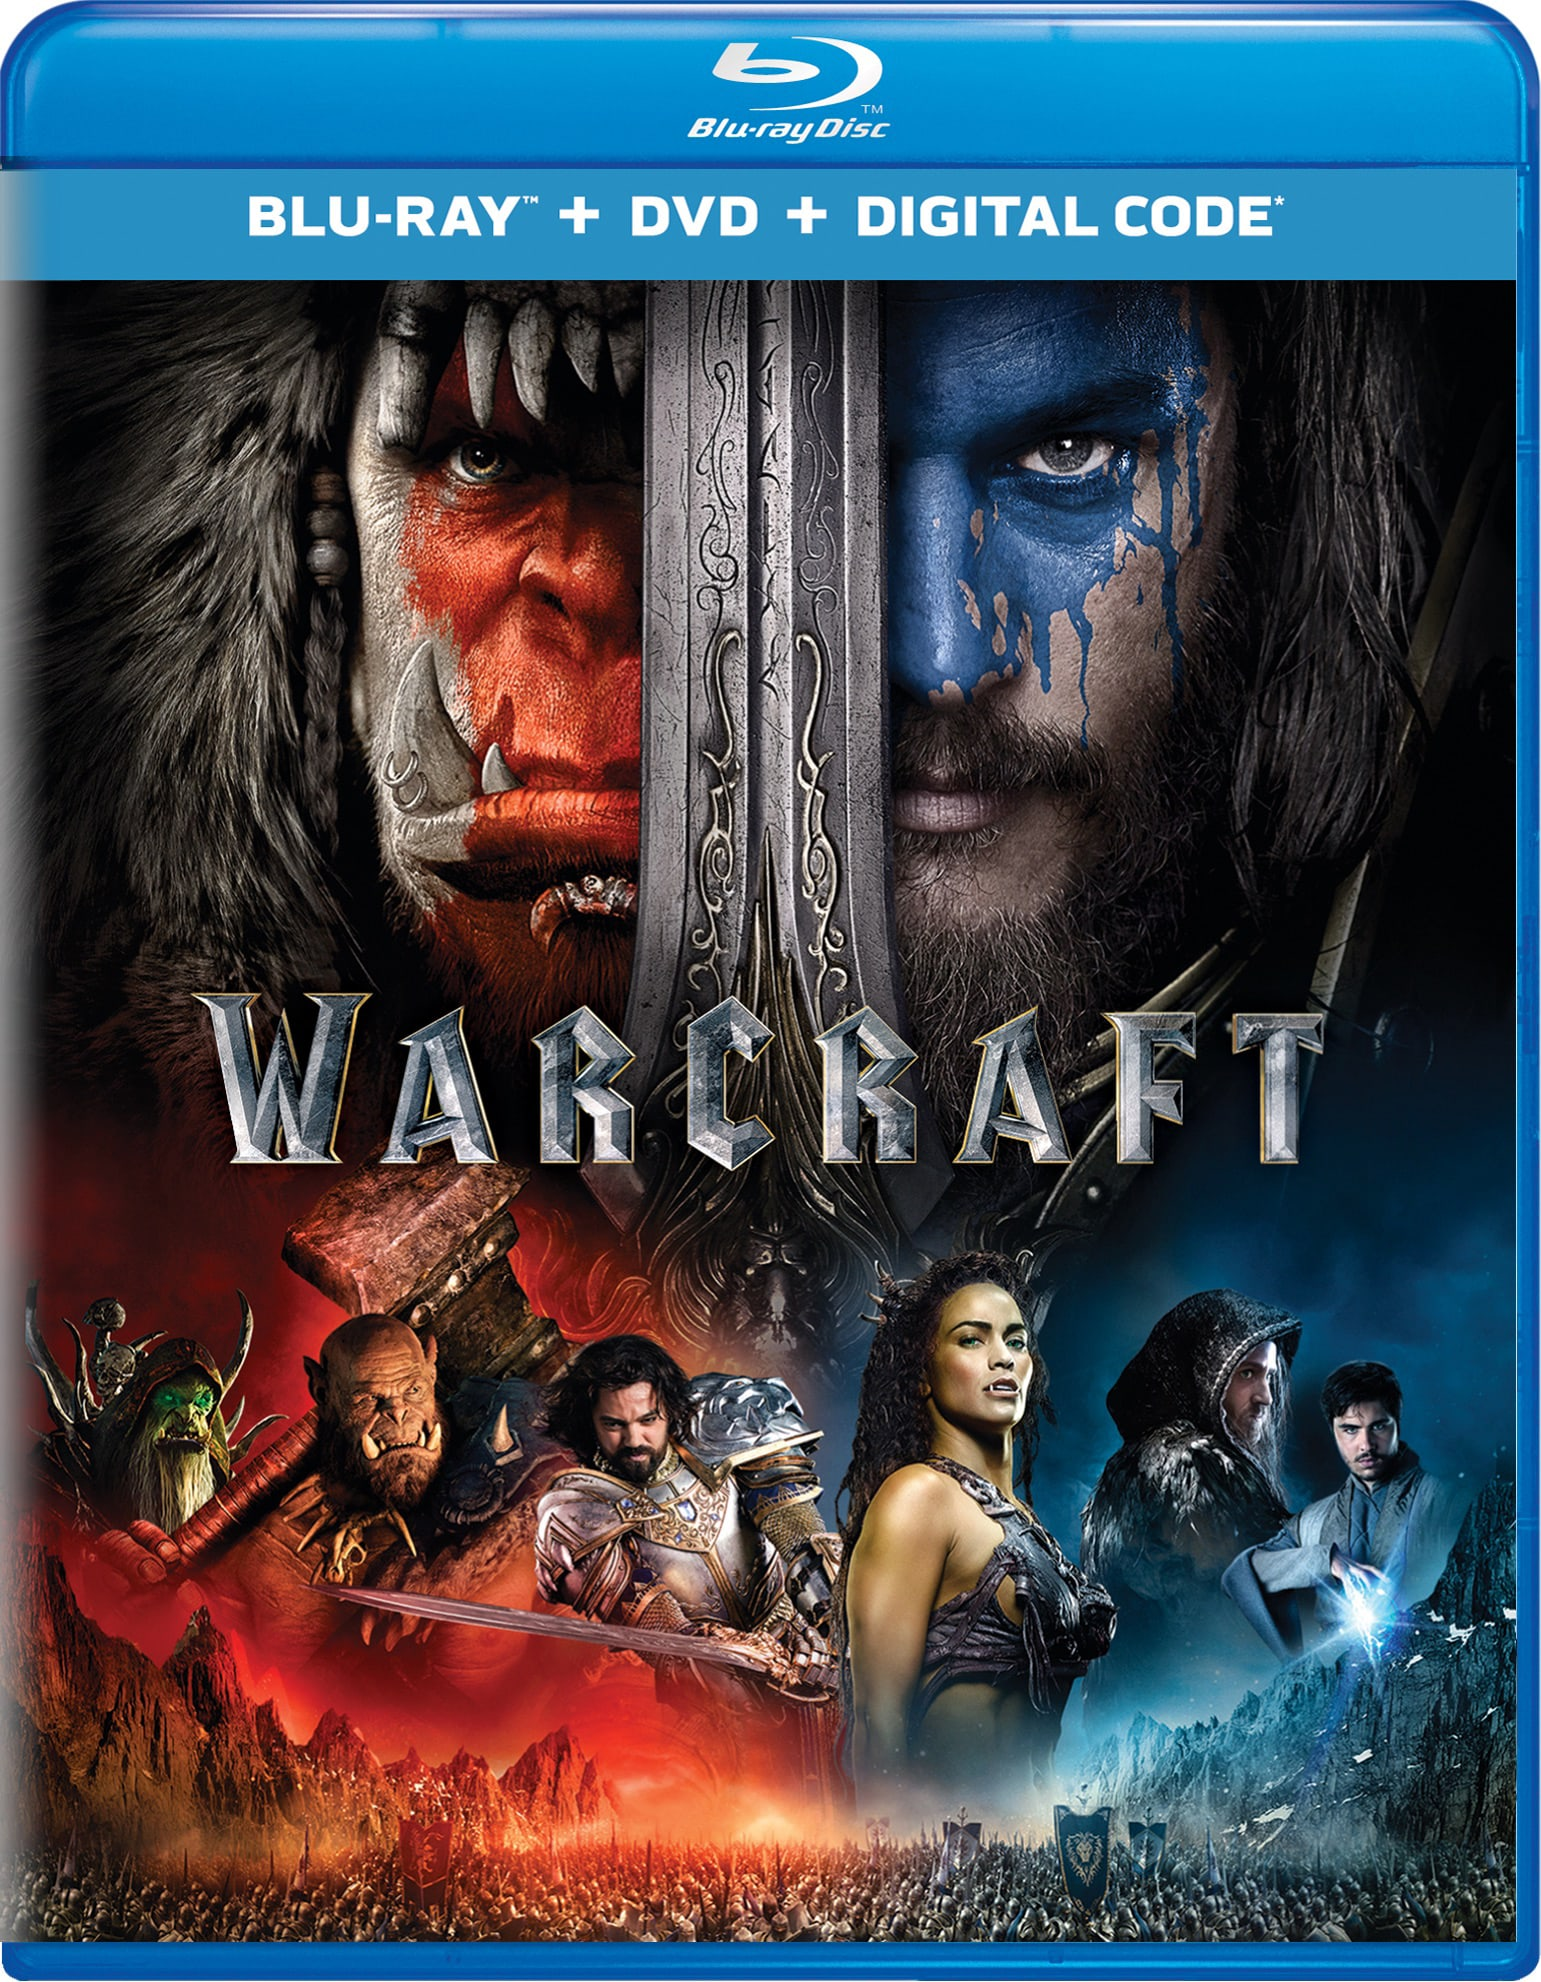 Warcraft: The Beginning (DVD + Digital) [Blu-ray]